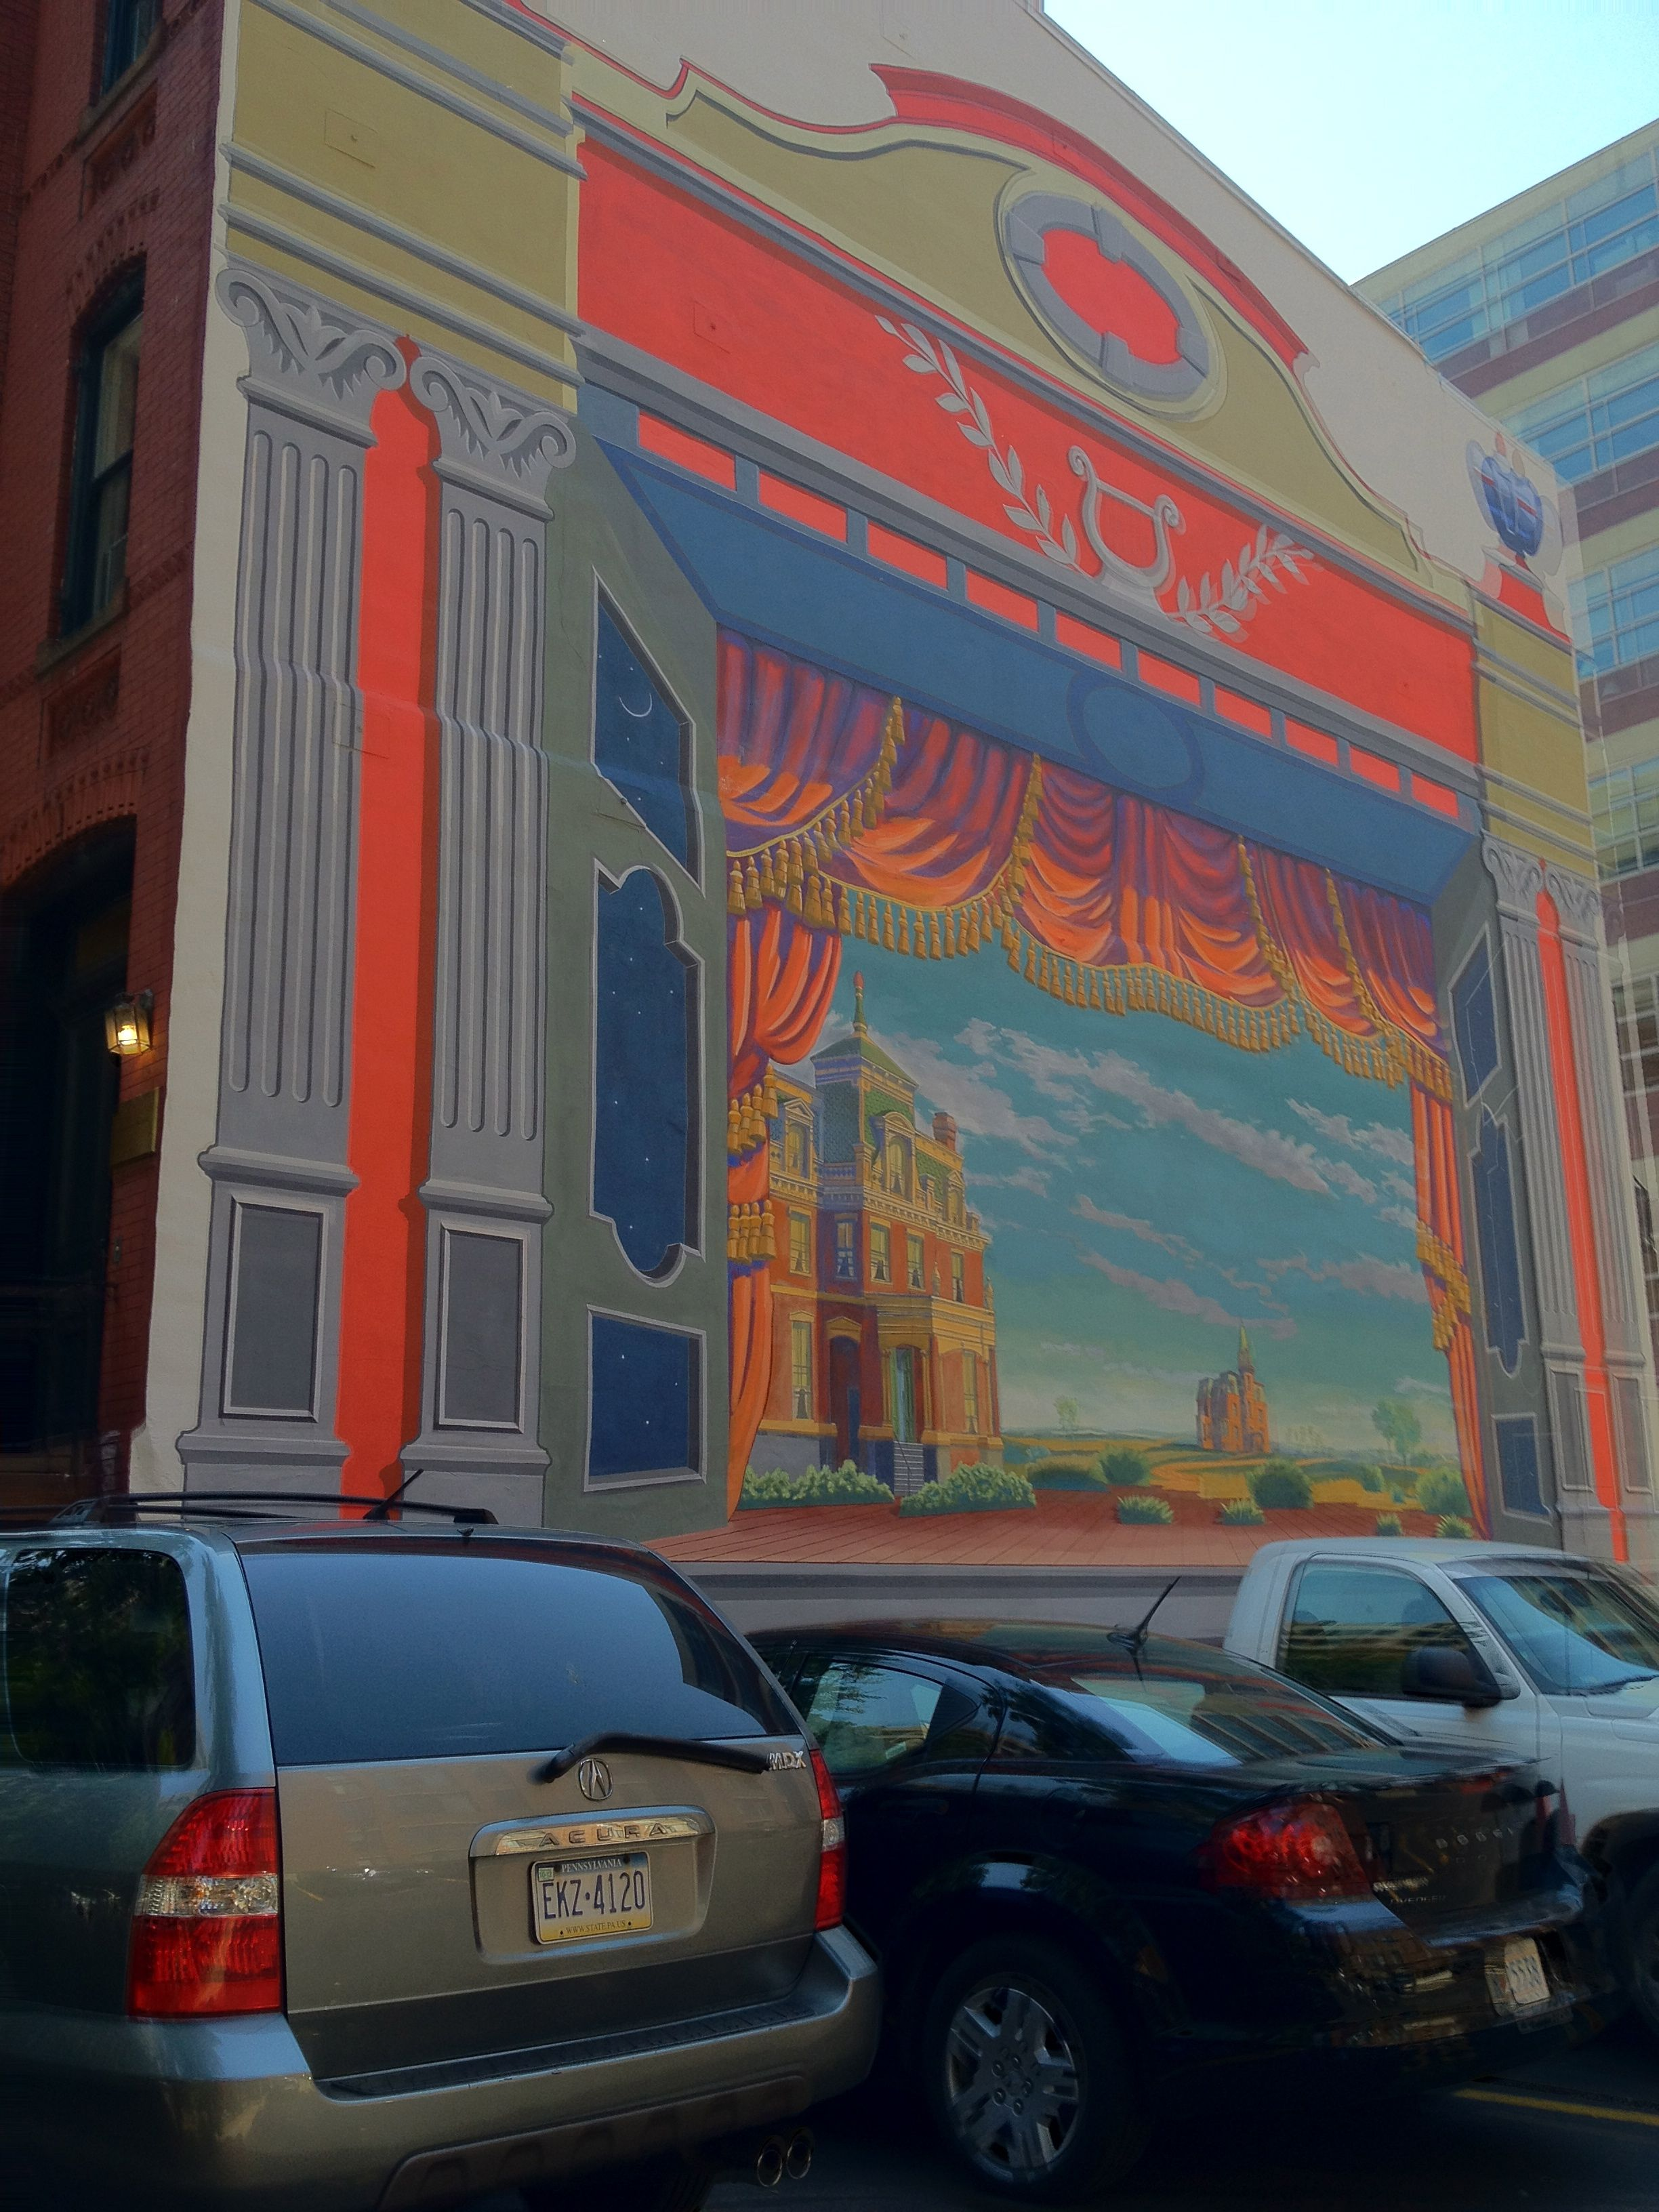 Toy Theater mural by Peter Waddell, located at 1914